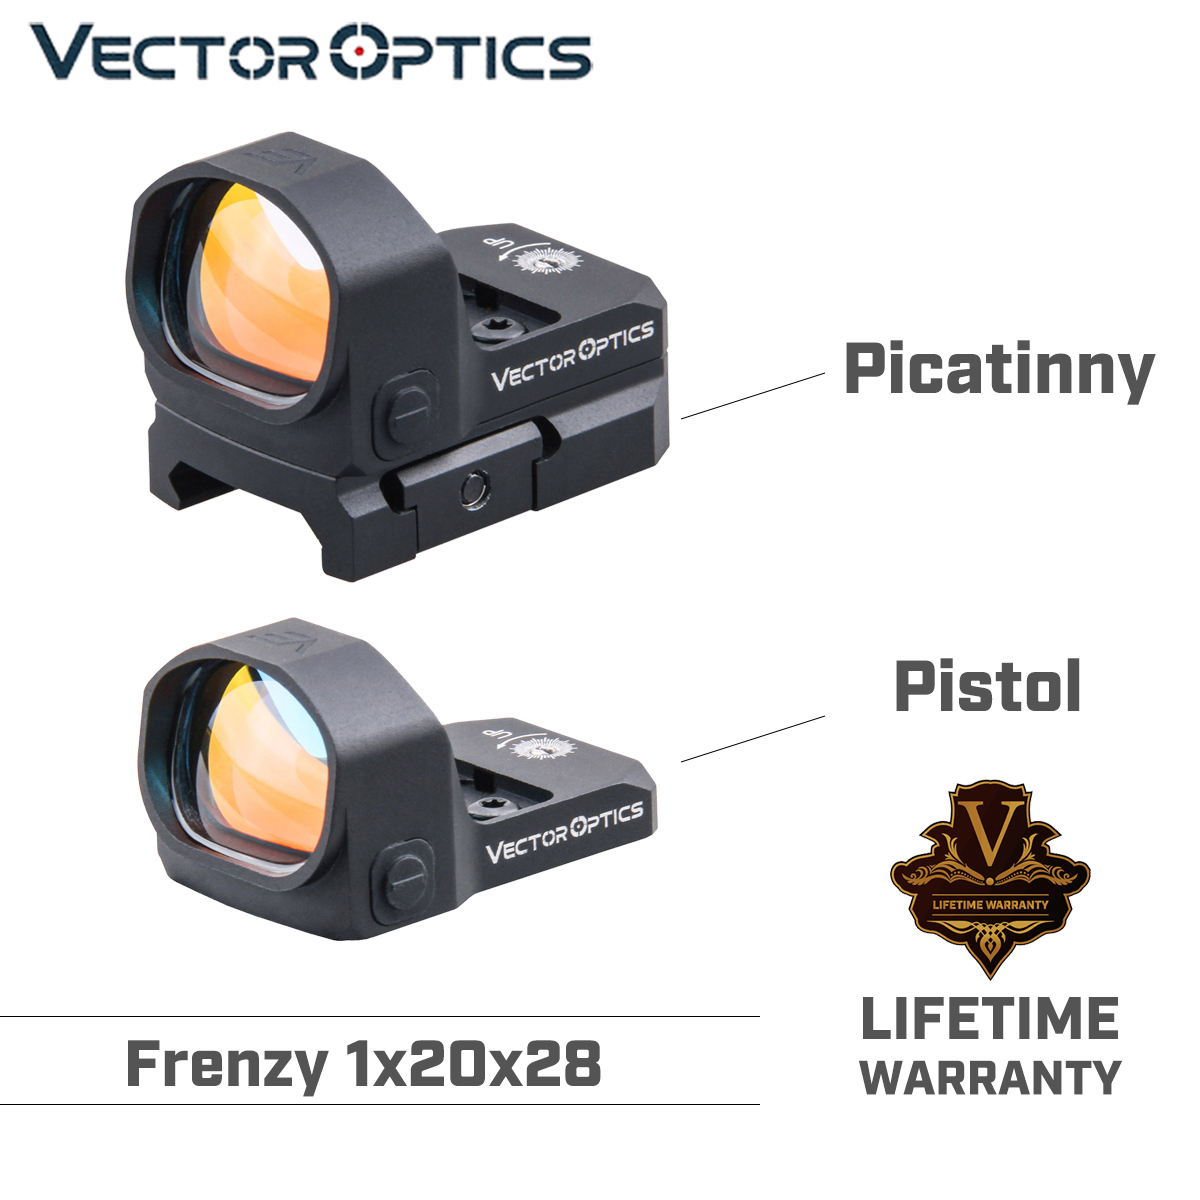 Vector Optics Frenzy 1x20x28 Red Dot Scope Handgun Pistol Sight IPX6 Water Proof Fit For GLOCK 17 19 9mm AR15 M4 AK Shotgun 12ga title=